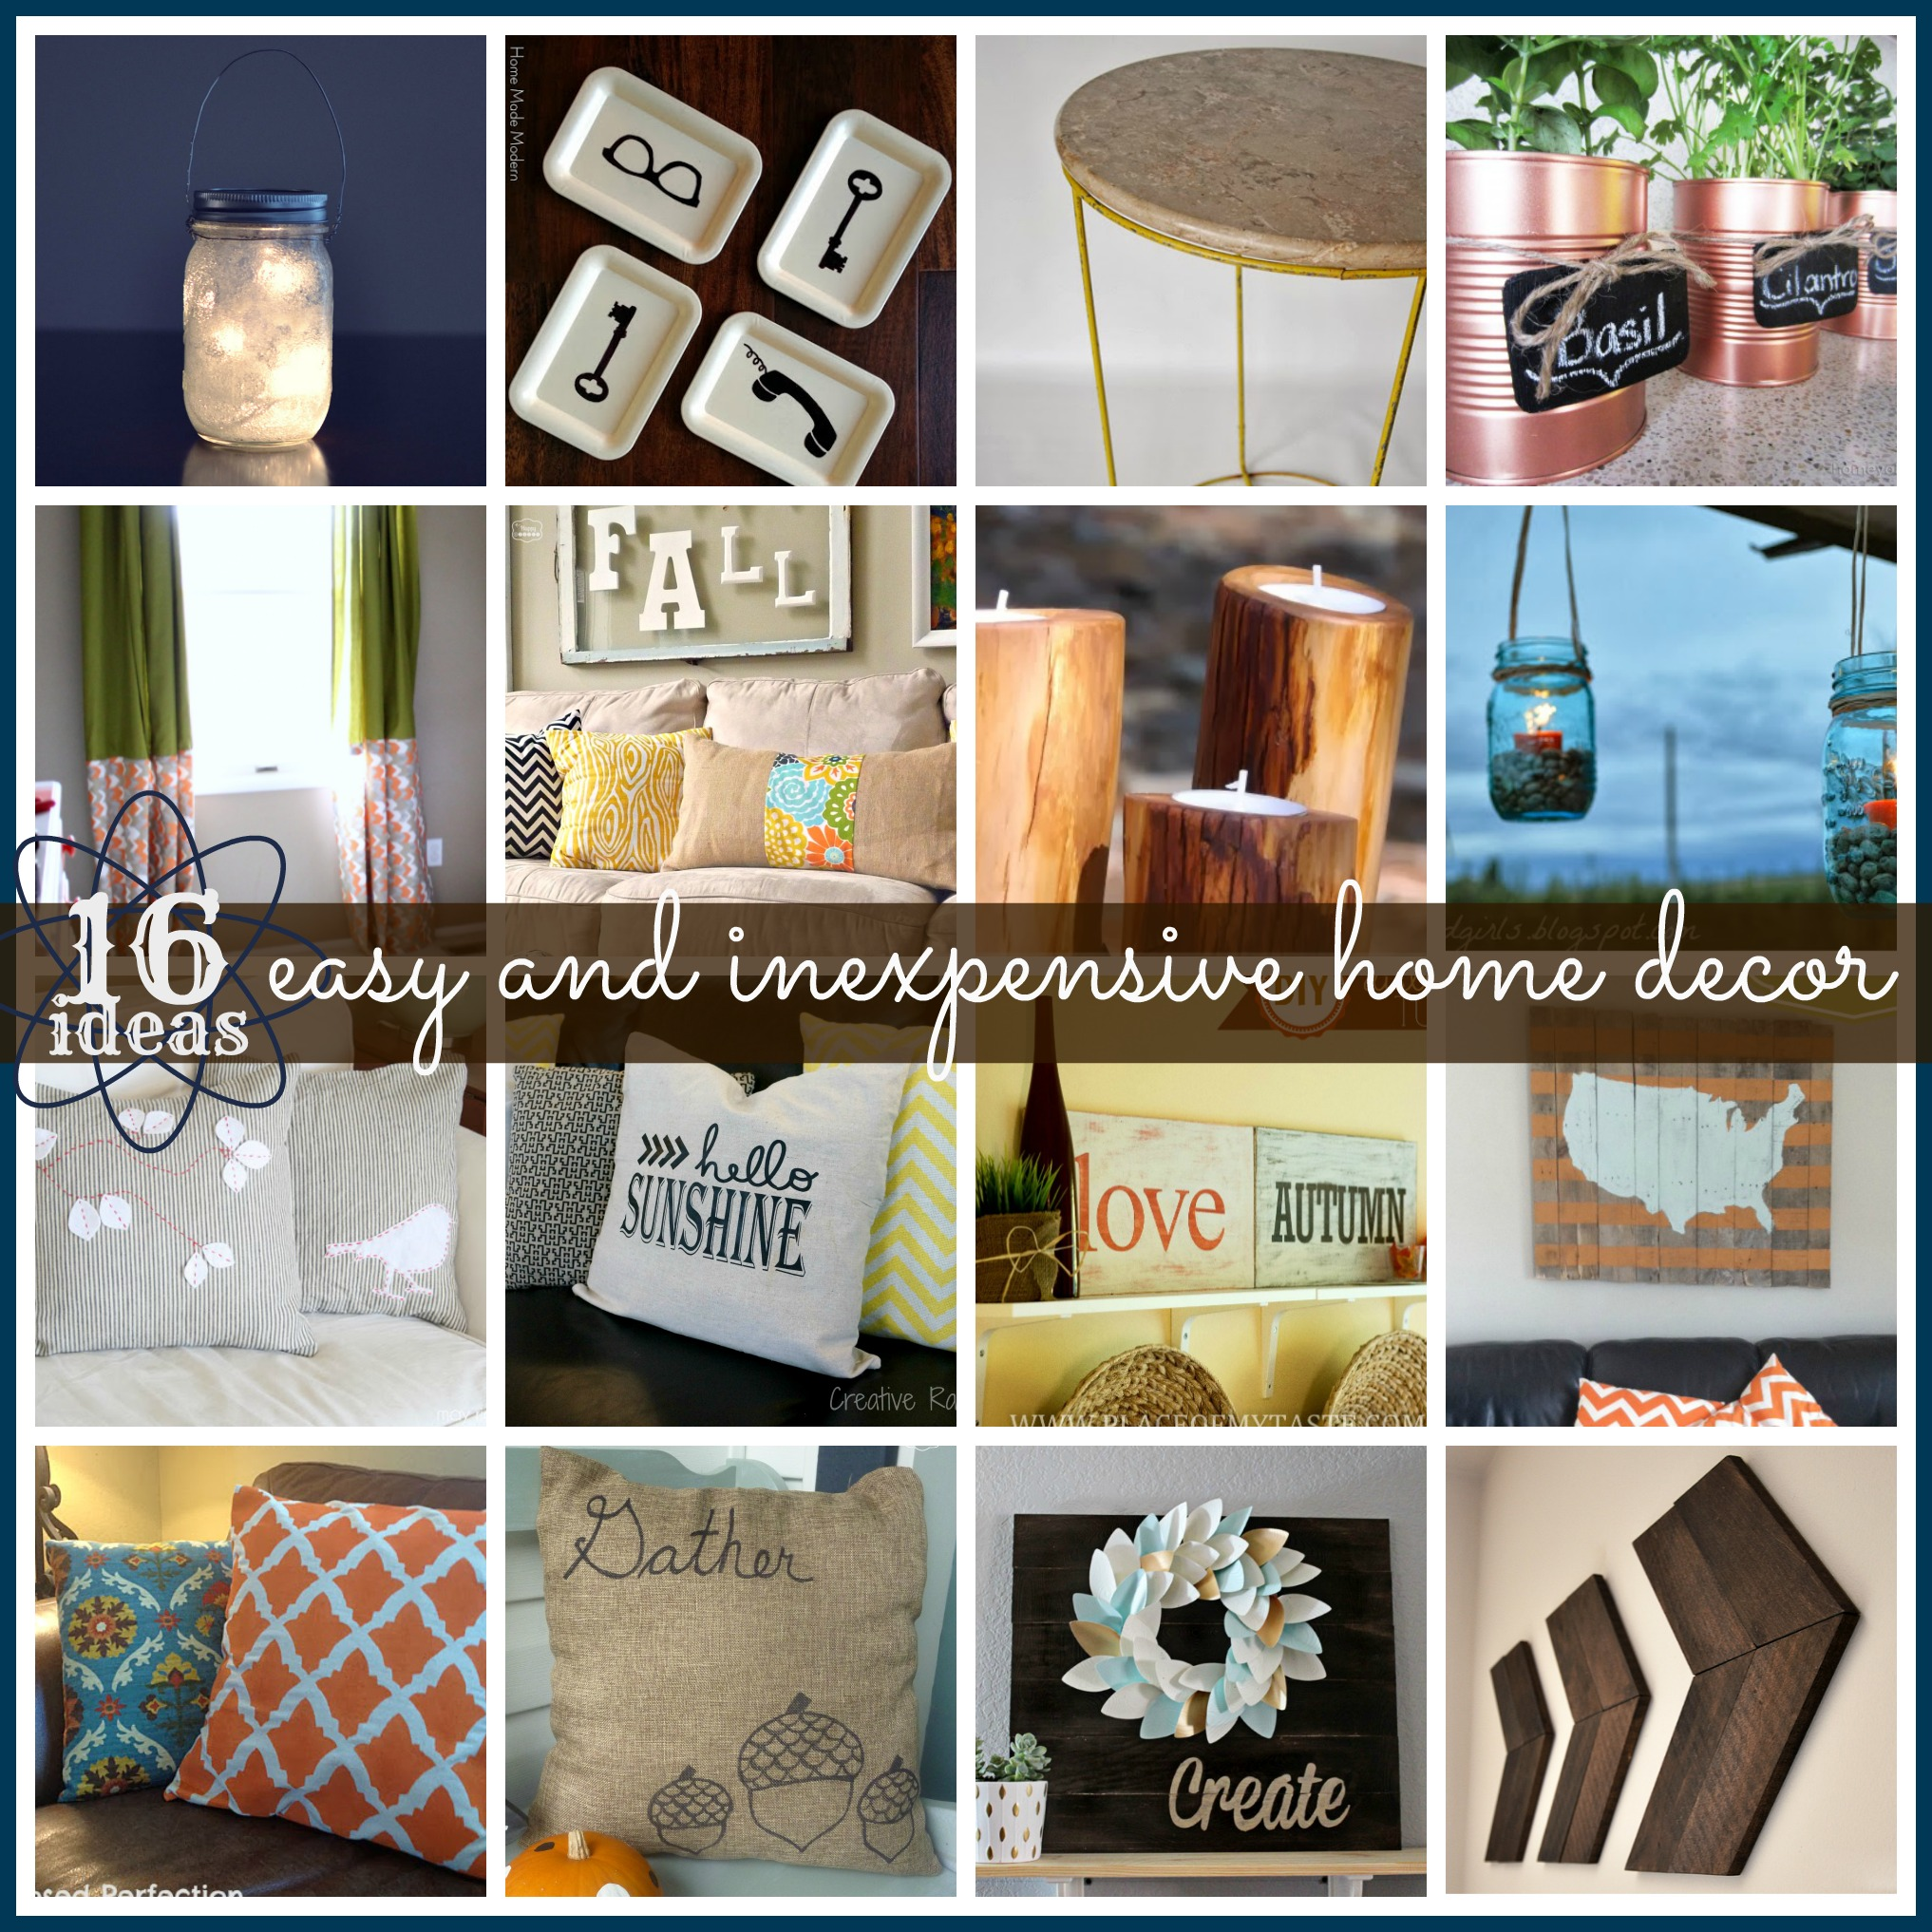 Simple Home Art Decor Ideas: Link Party Features [16 Inexpensive & Easy Home Decor